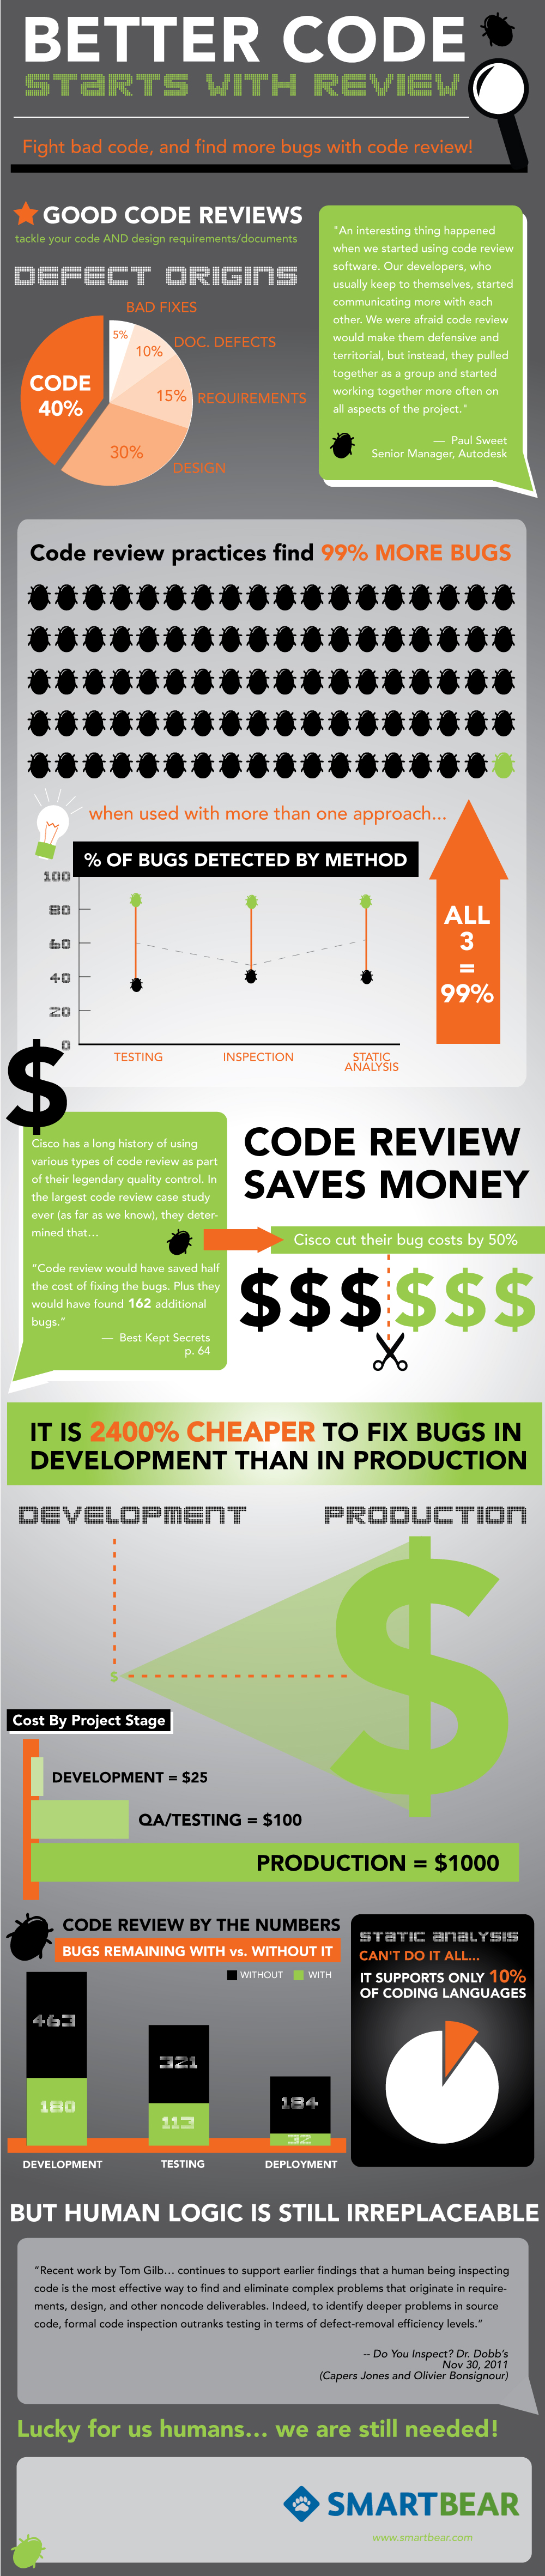 Code review value